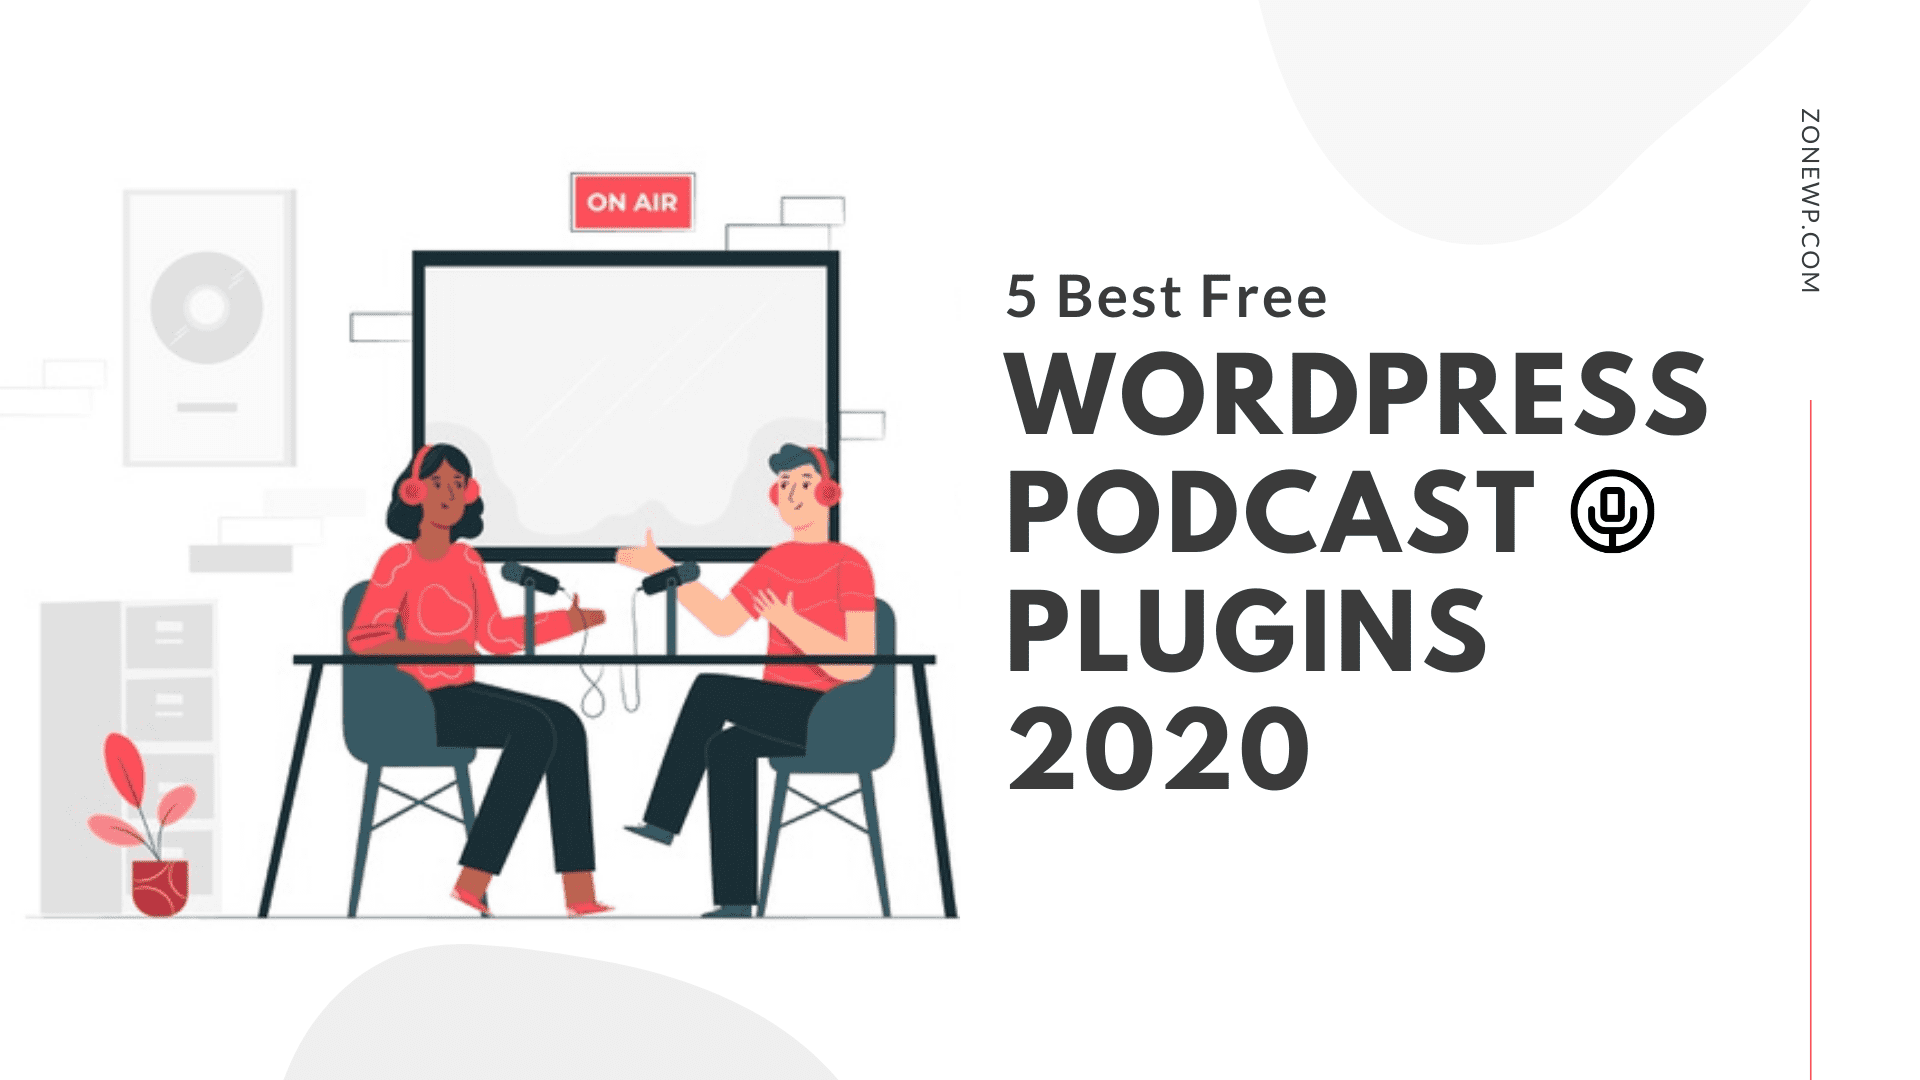 5 Best Free WordPress Podcast Plugins 2020